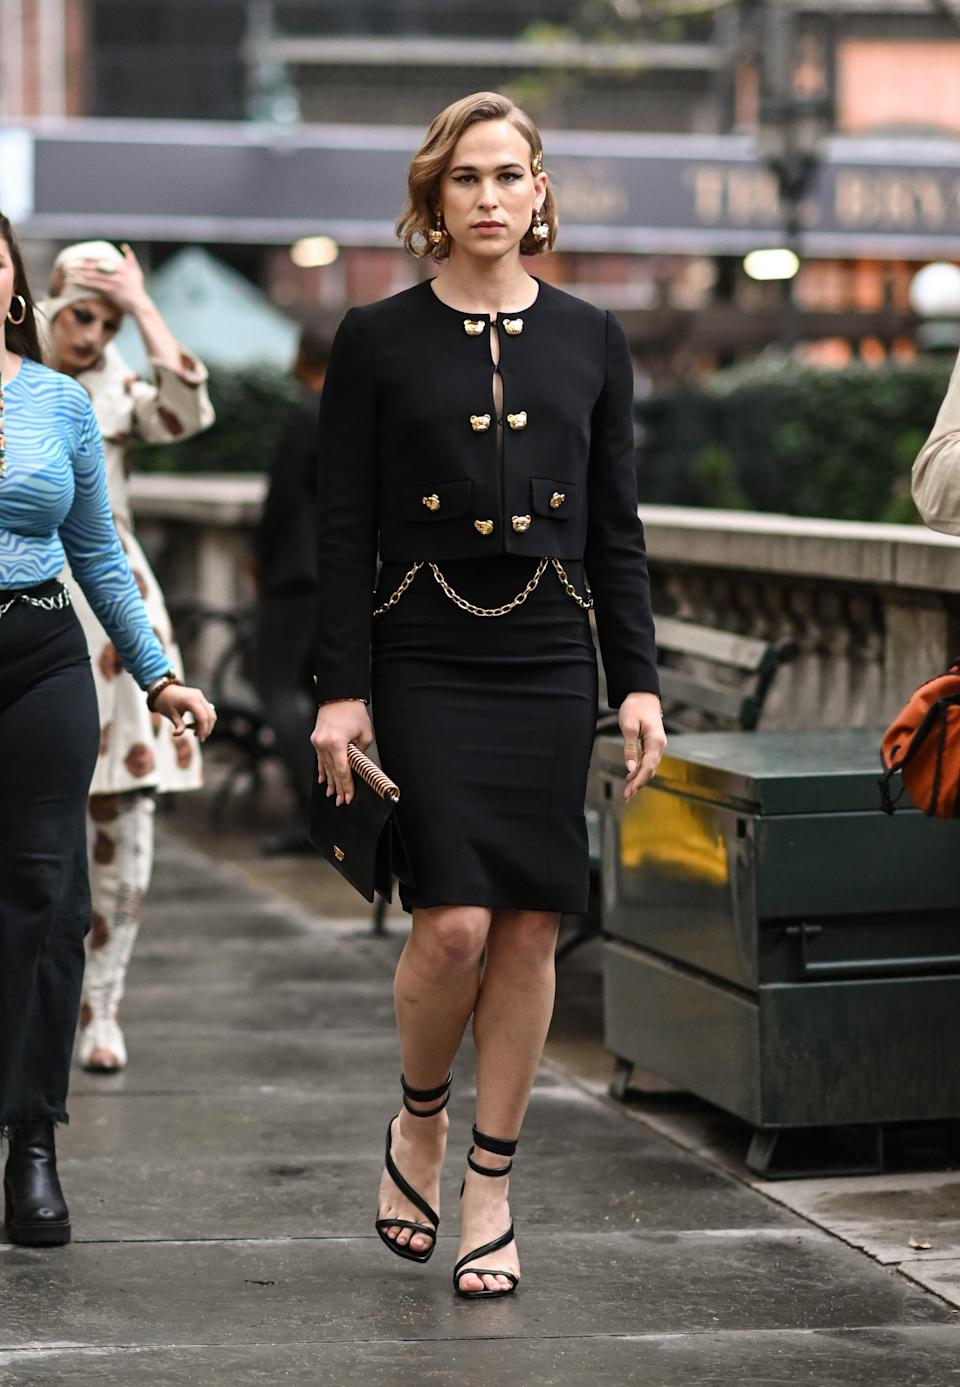 <p>She stunned in a classic black skirt set adorned with Moschino's signature gold teddy bears.</p>